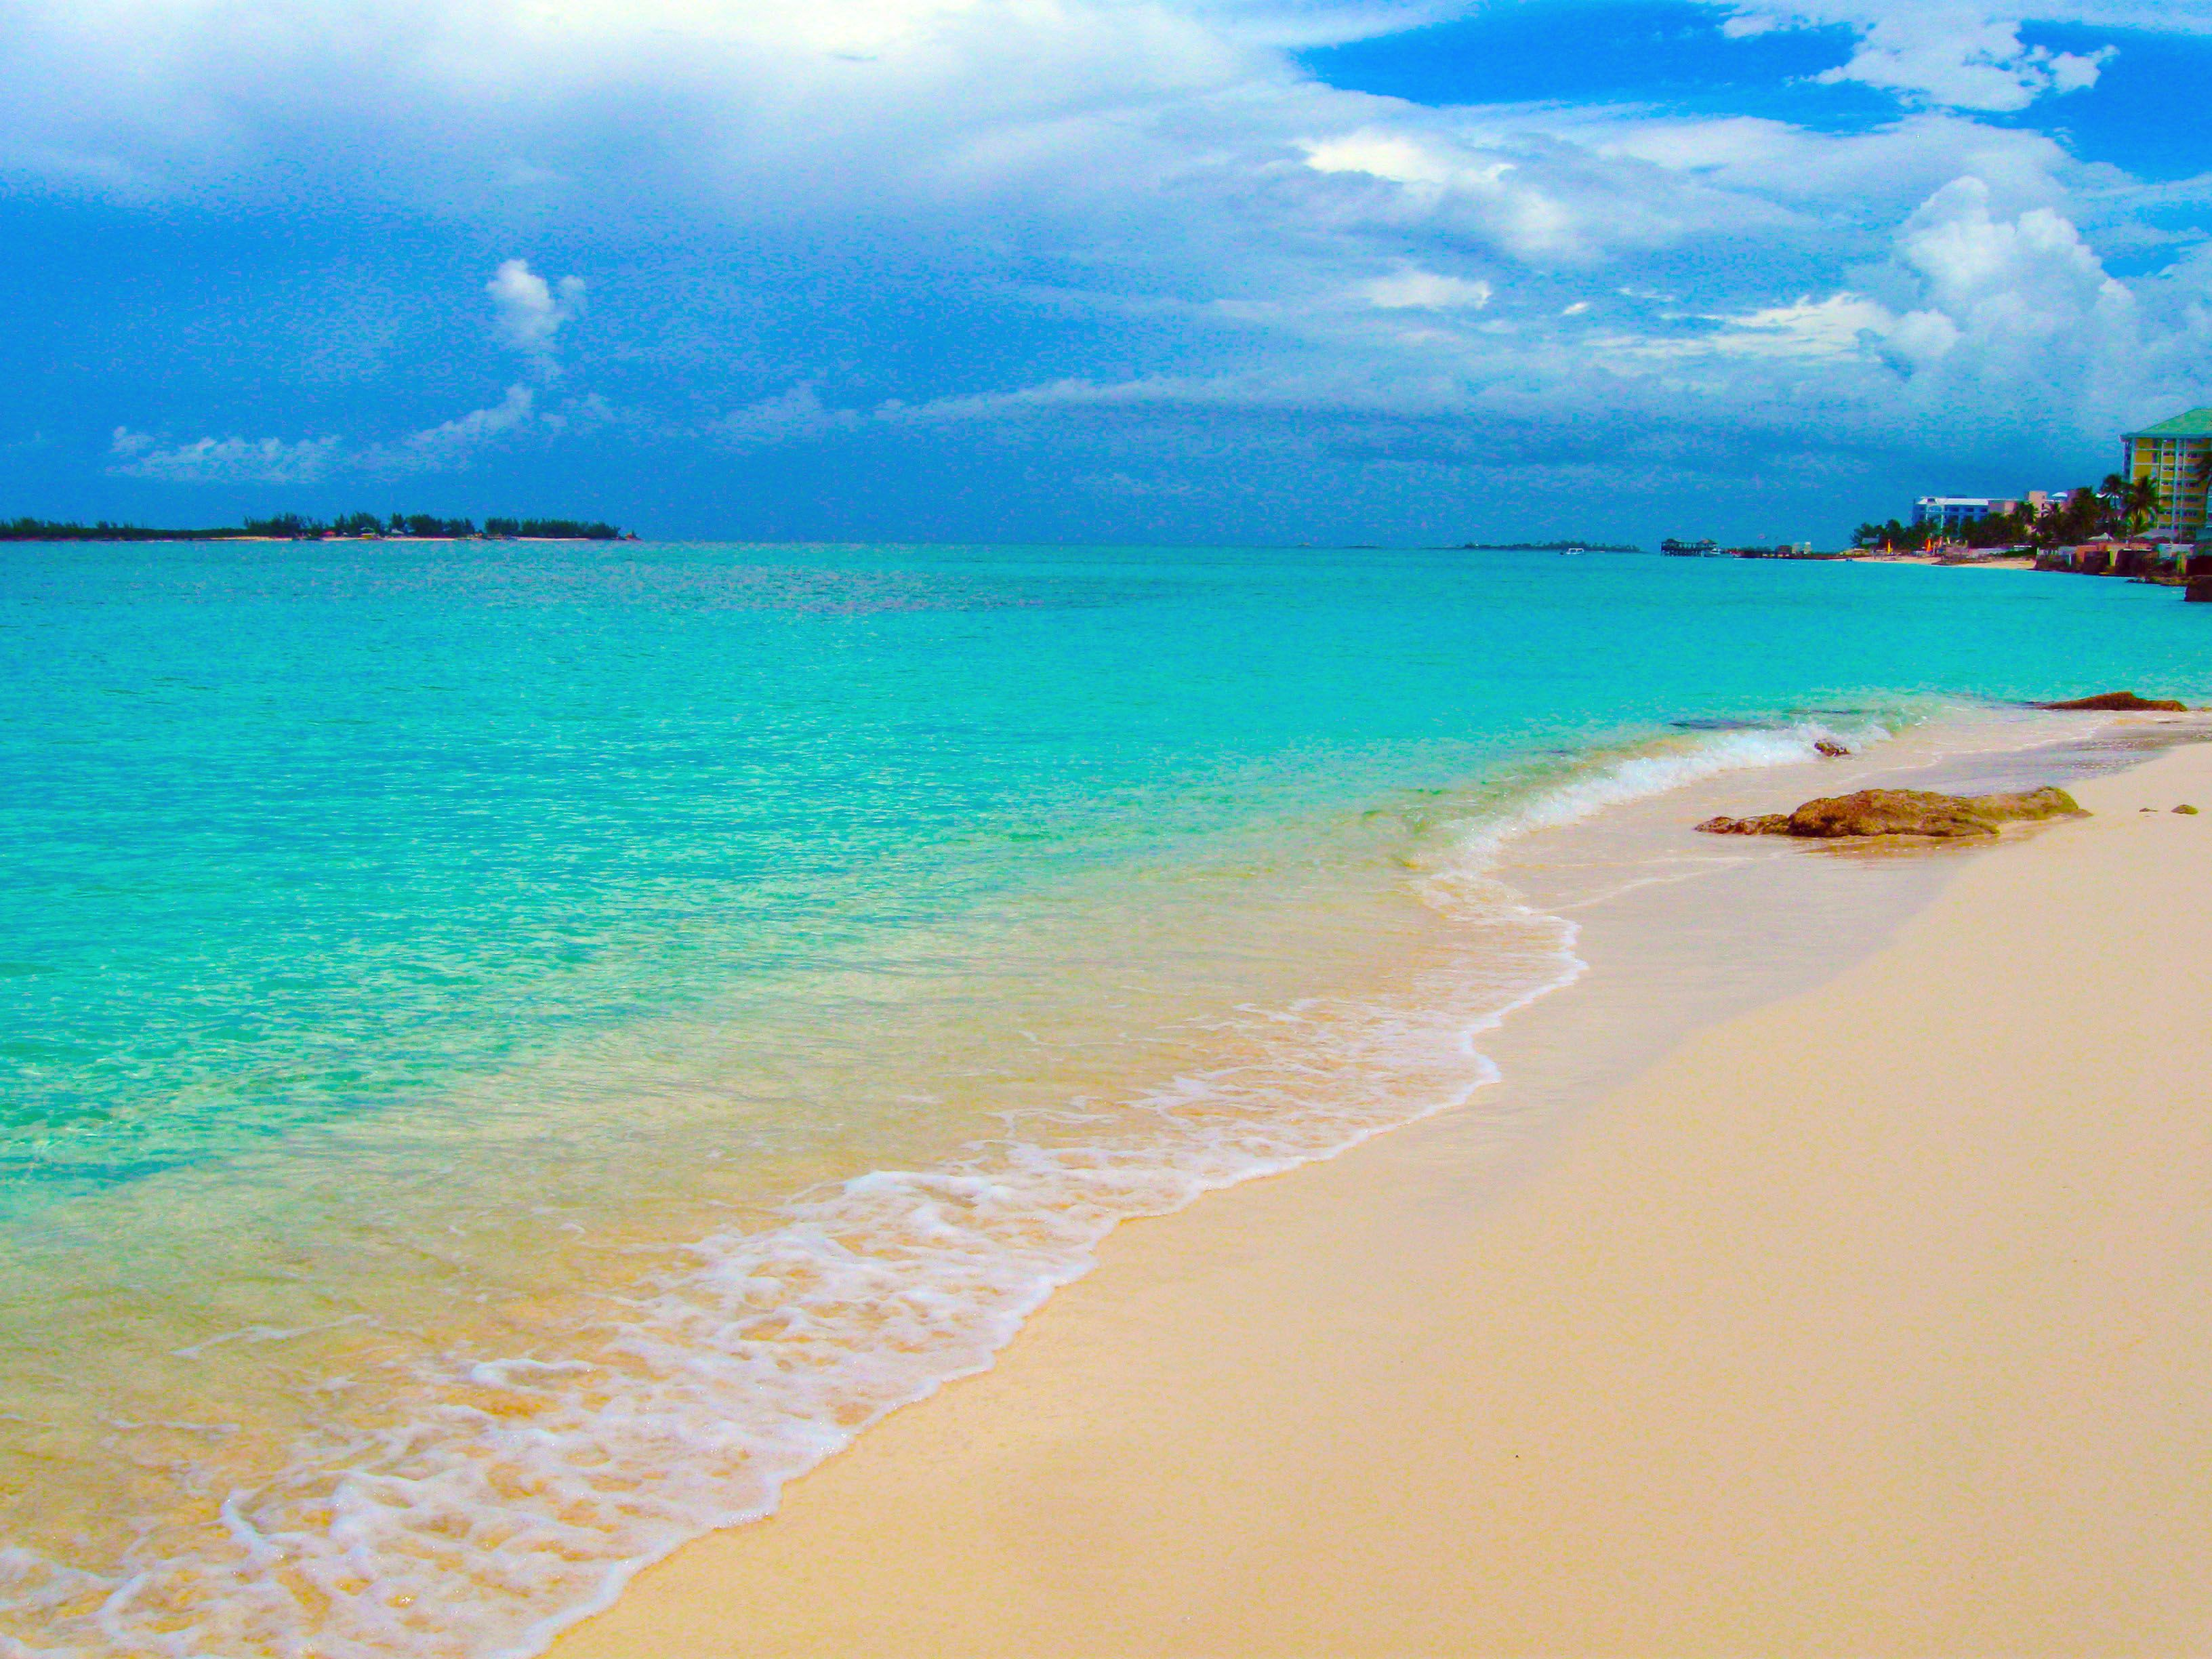 The Beautiful Weather And Crystal Clear Blue Waters Of The